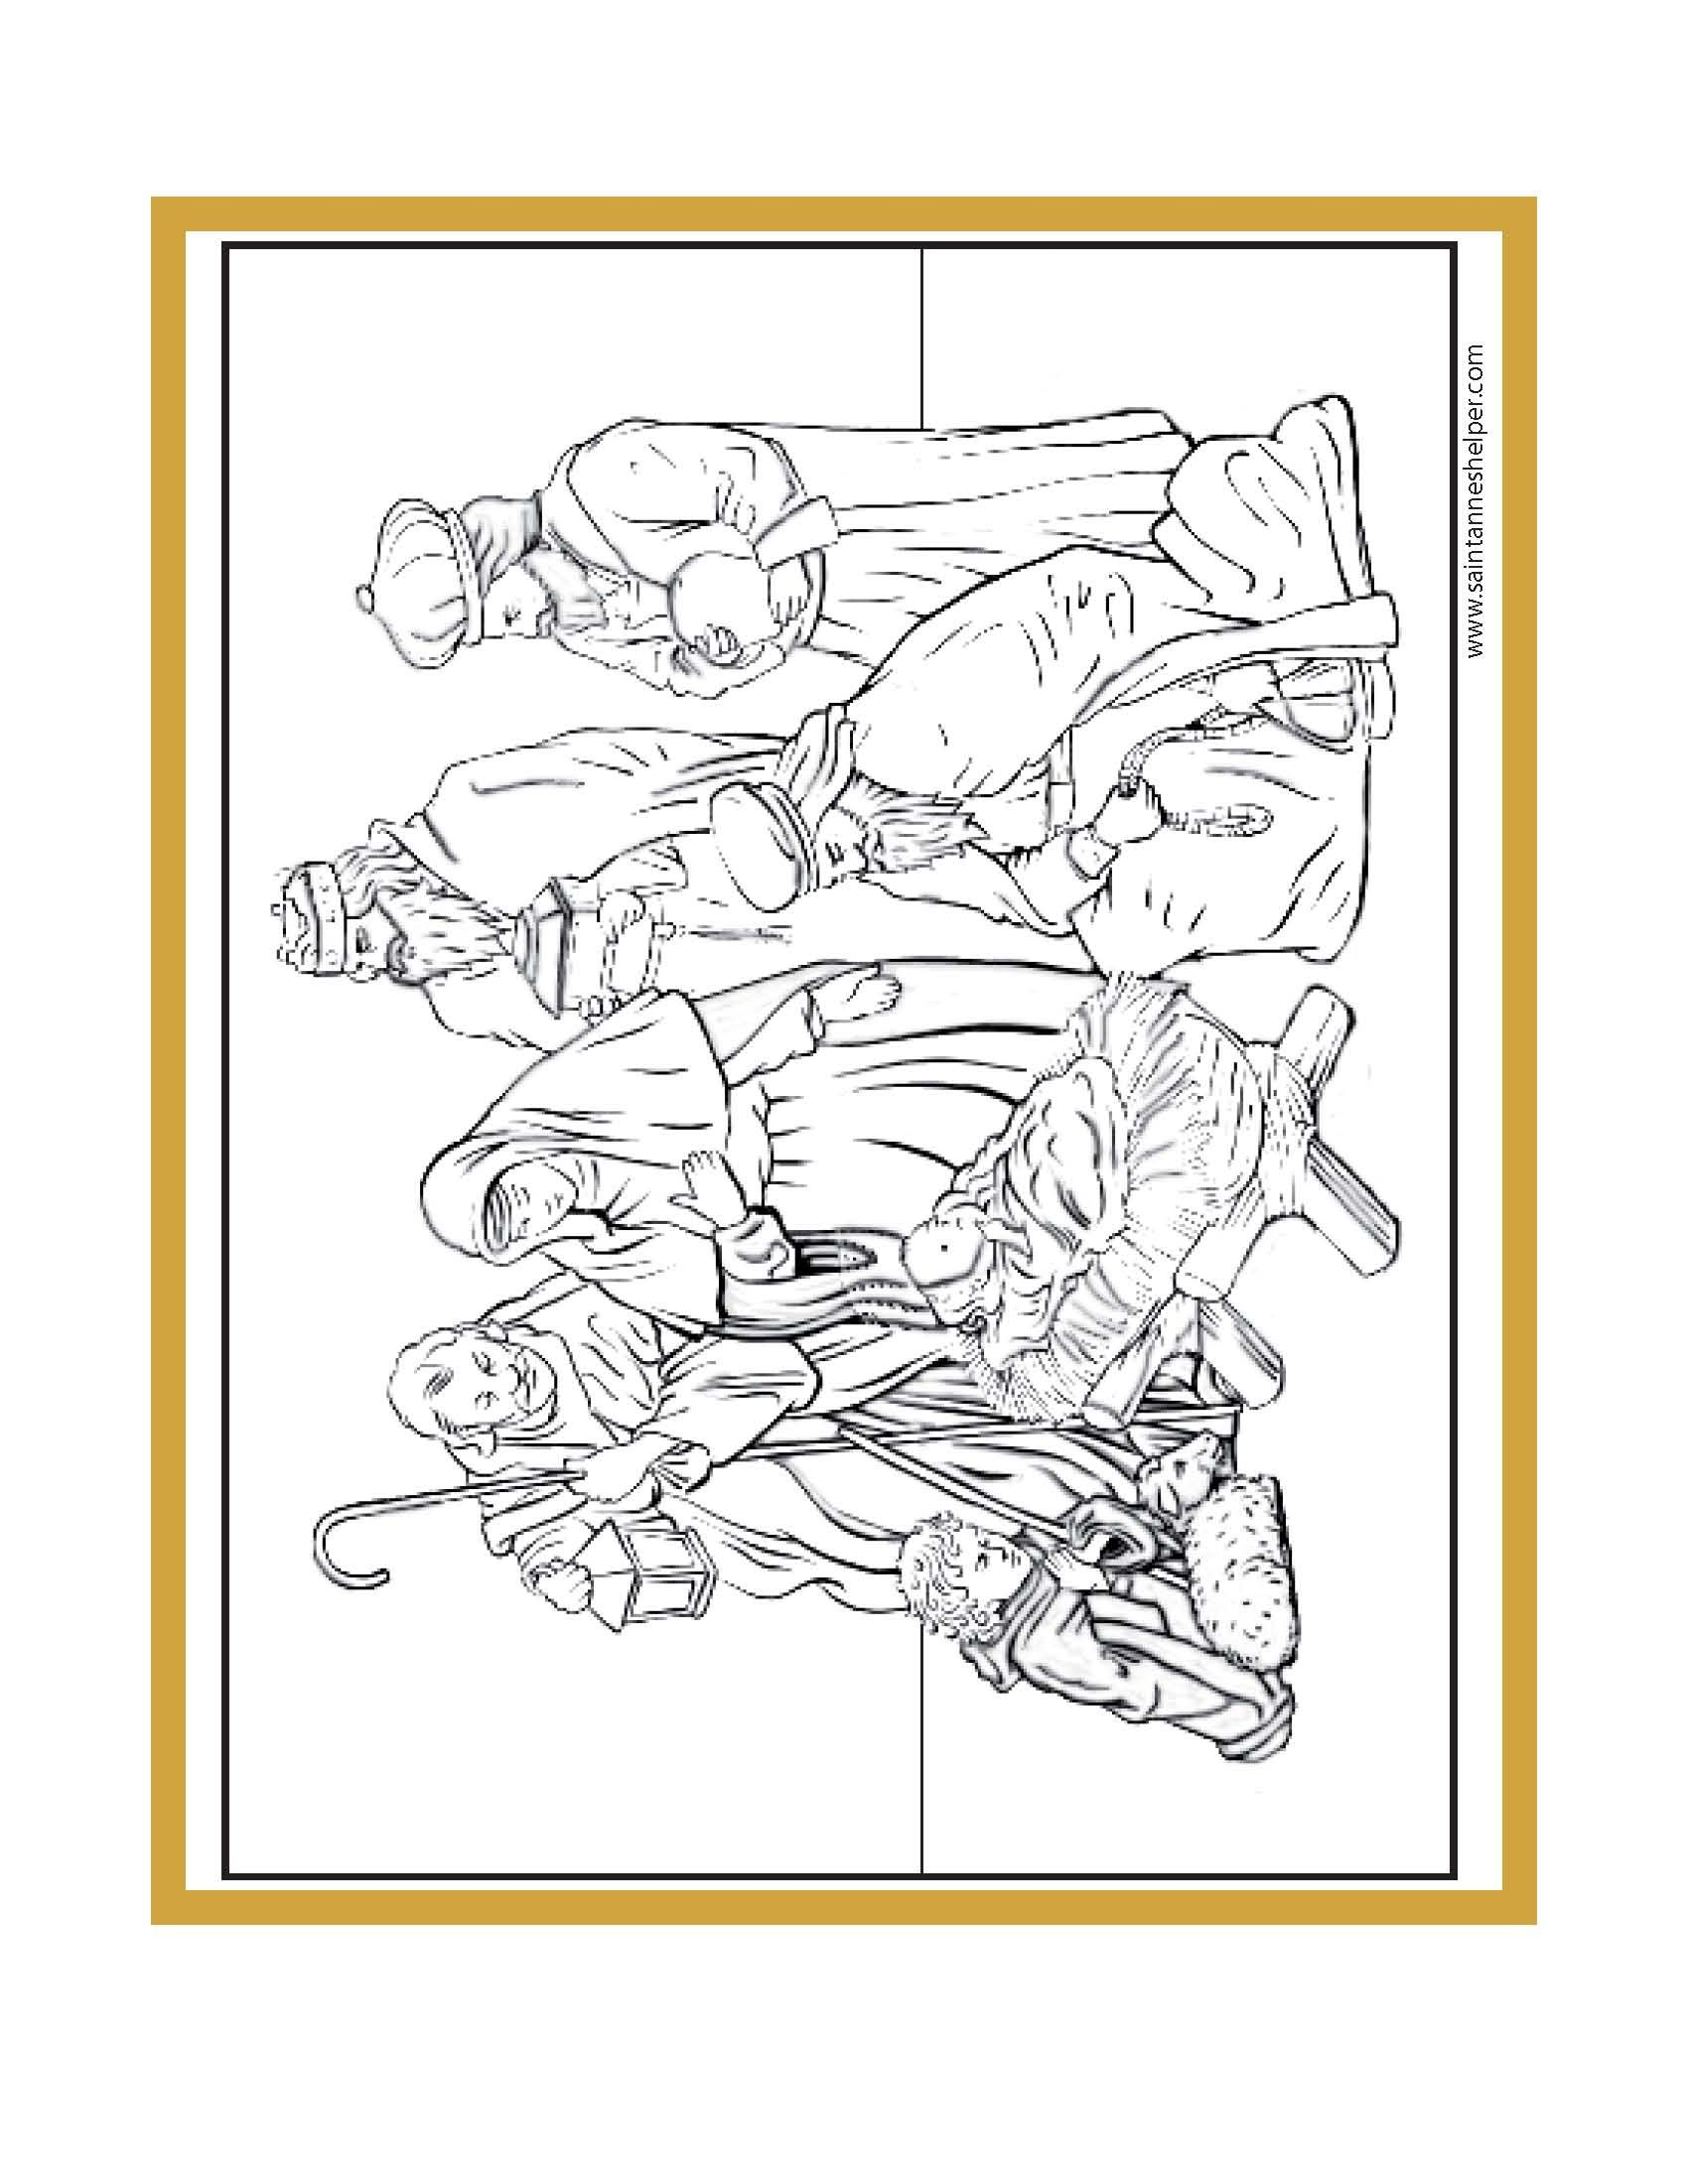 Colouring sheets nativity scene - Printable Christmas Coloring Pages Help Kids Honor Jesus Mary And Joseph In The Nativity Fun To Use In Catechism Class Religious Ed And Homeschool